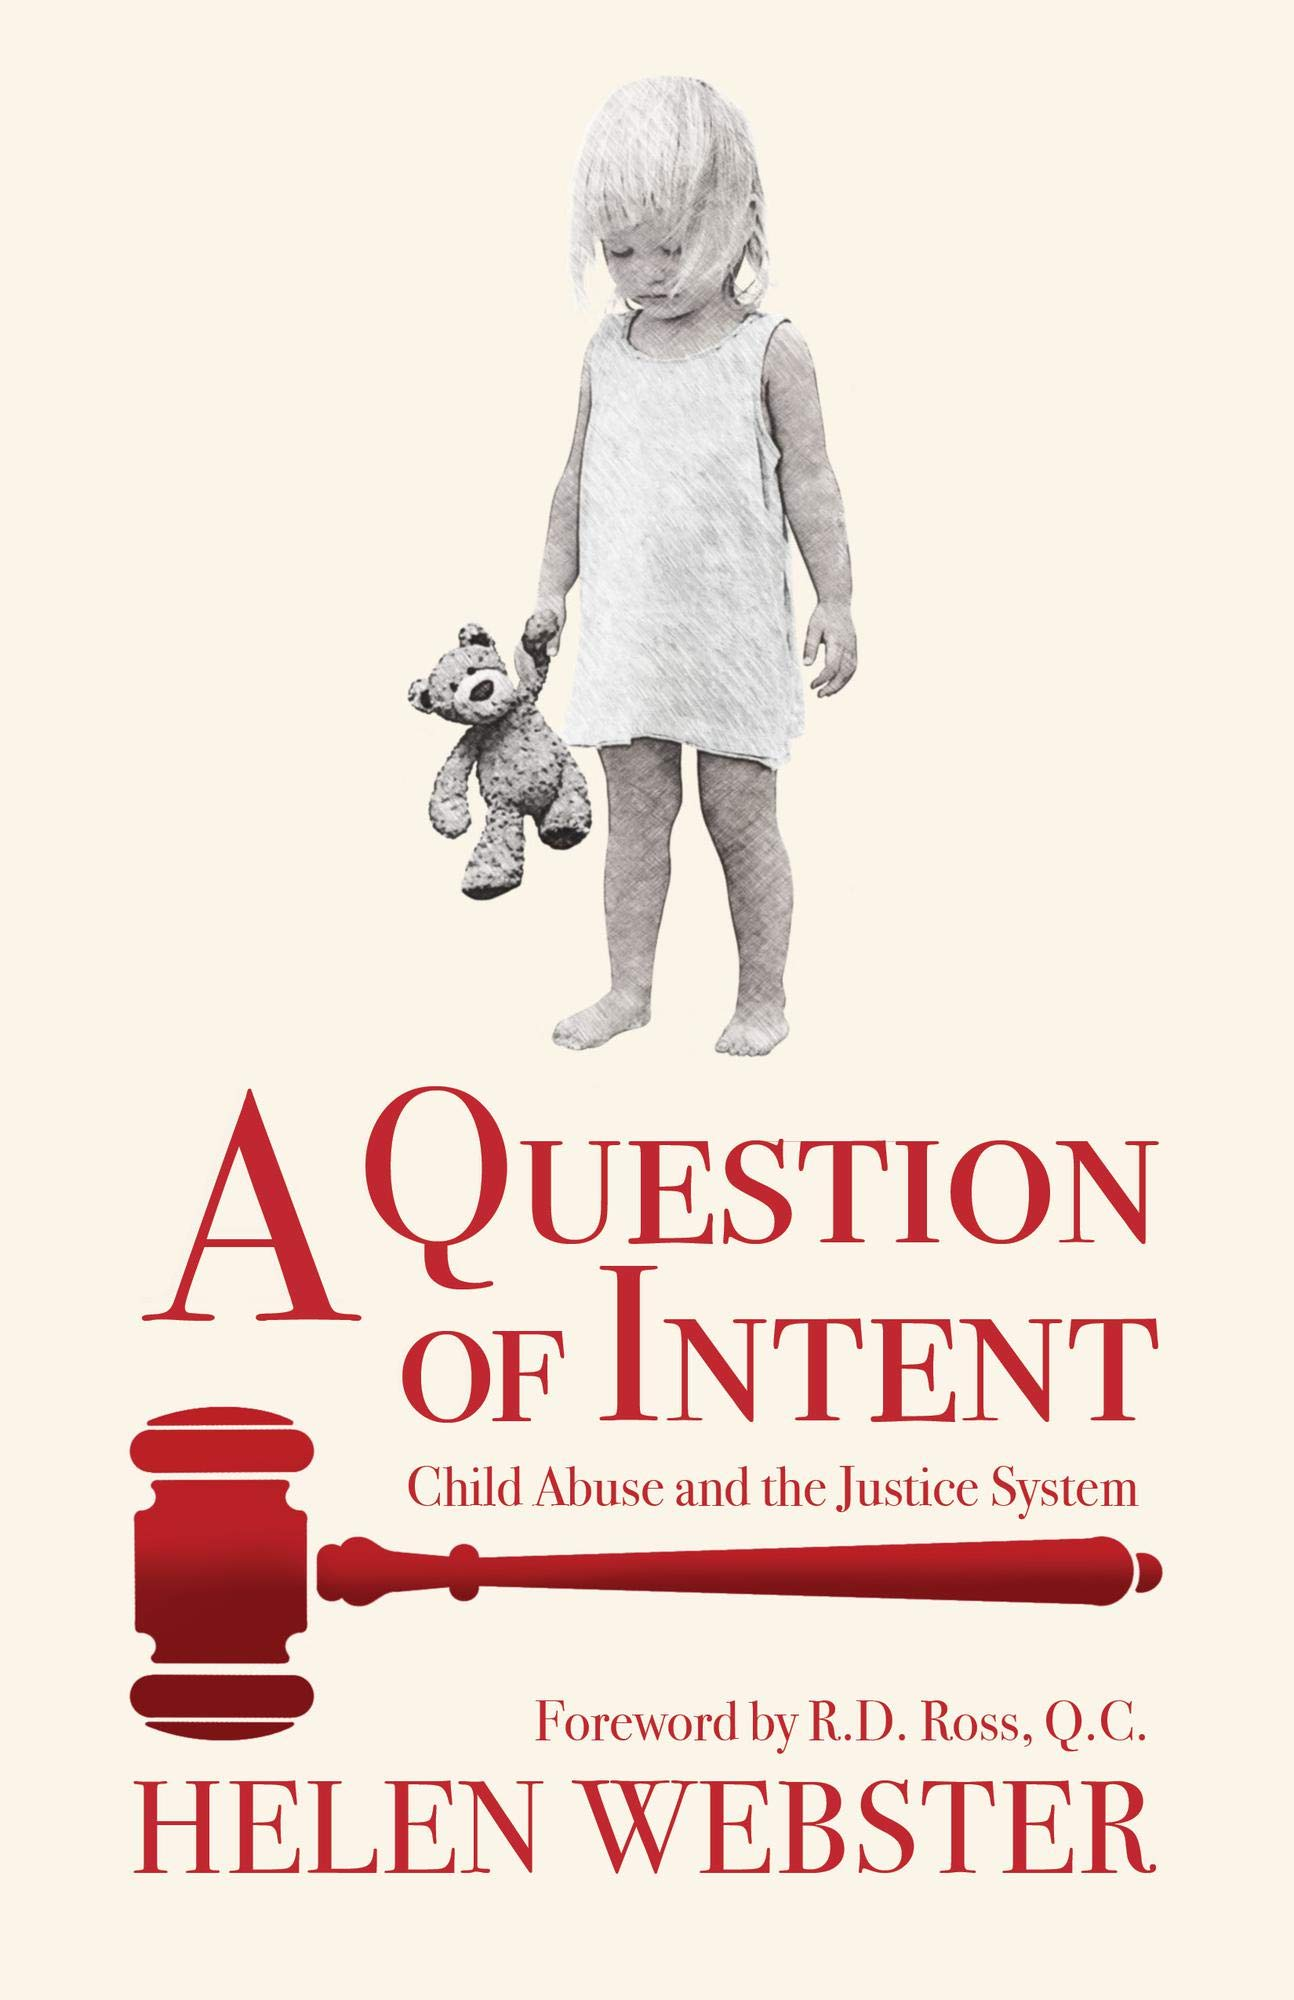 A Question of Intent: Child Abuse and the Justice System